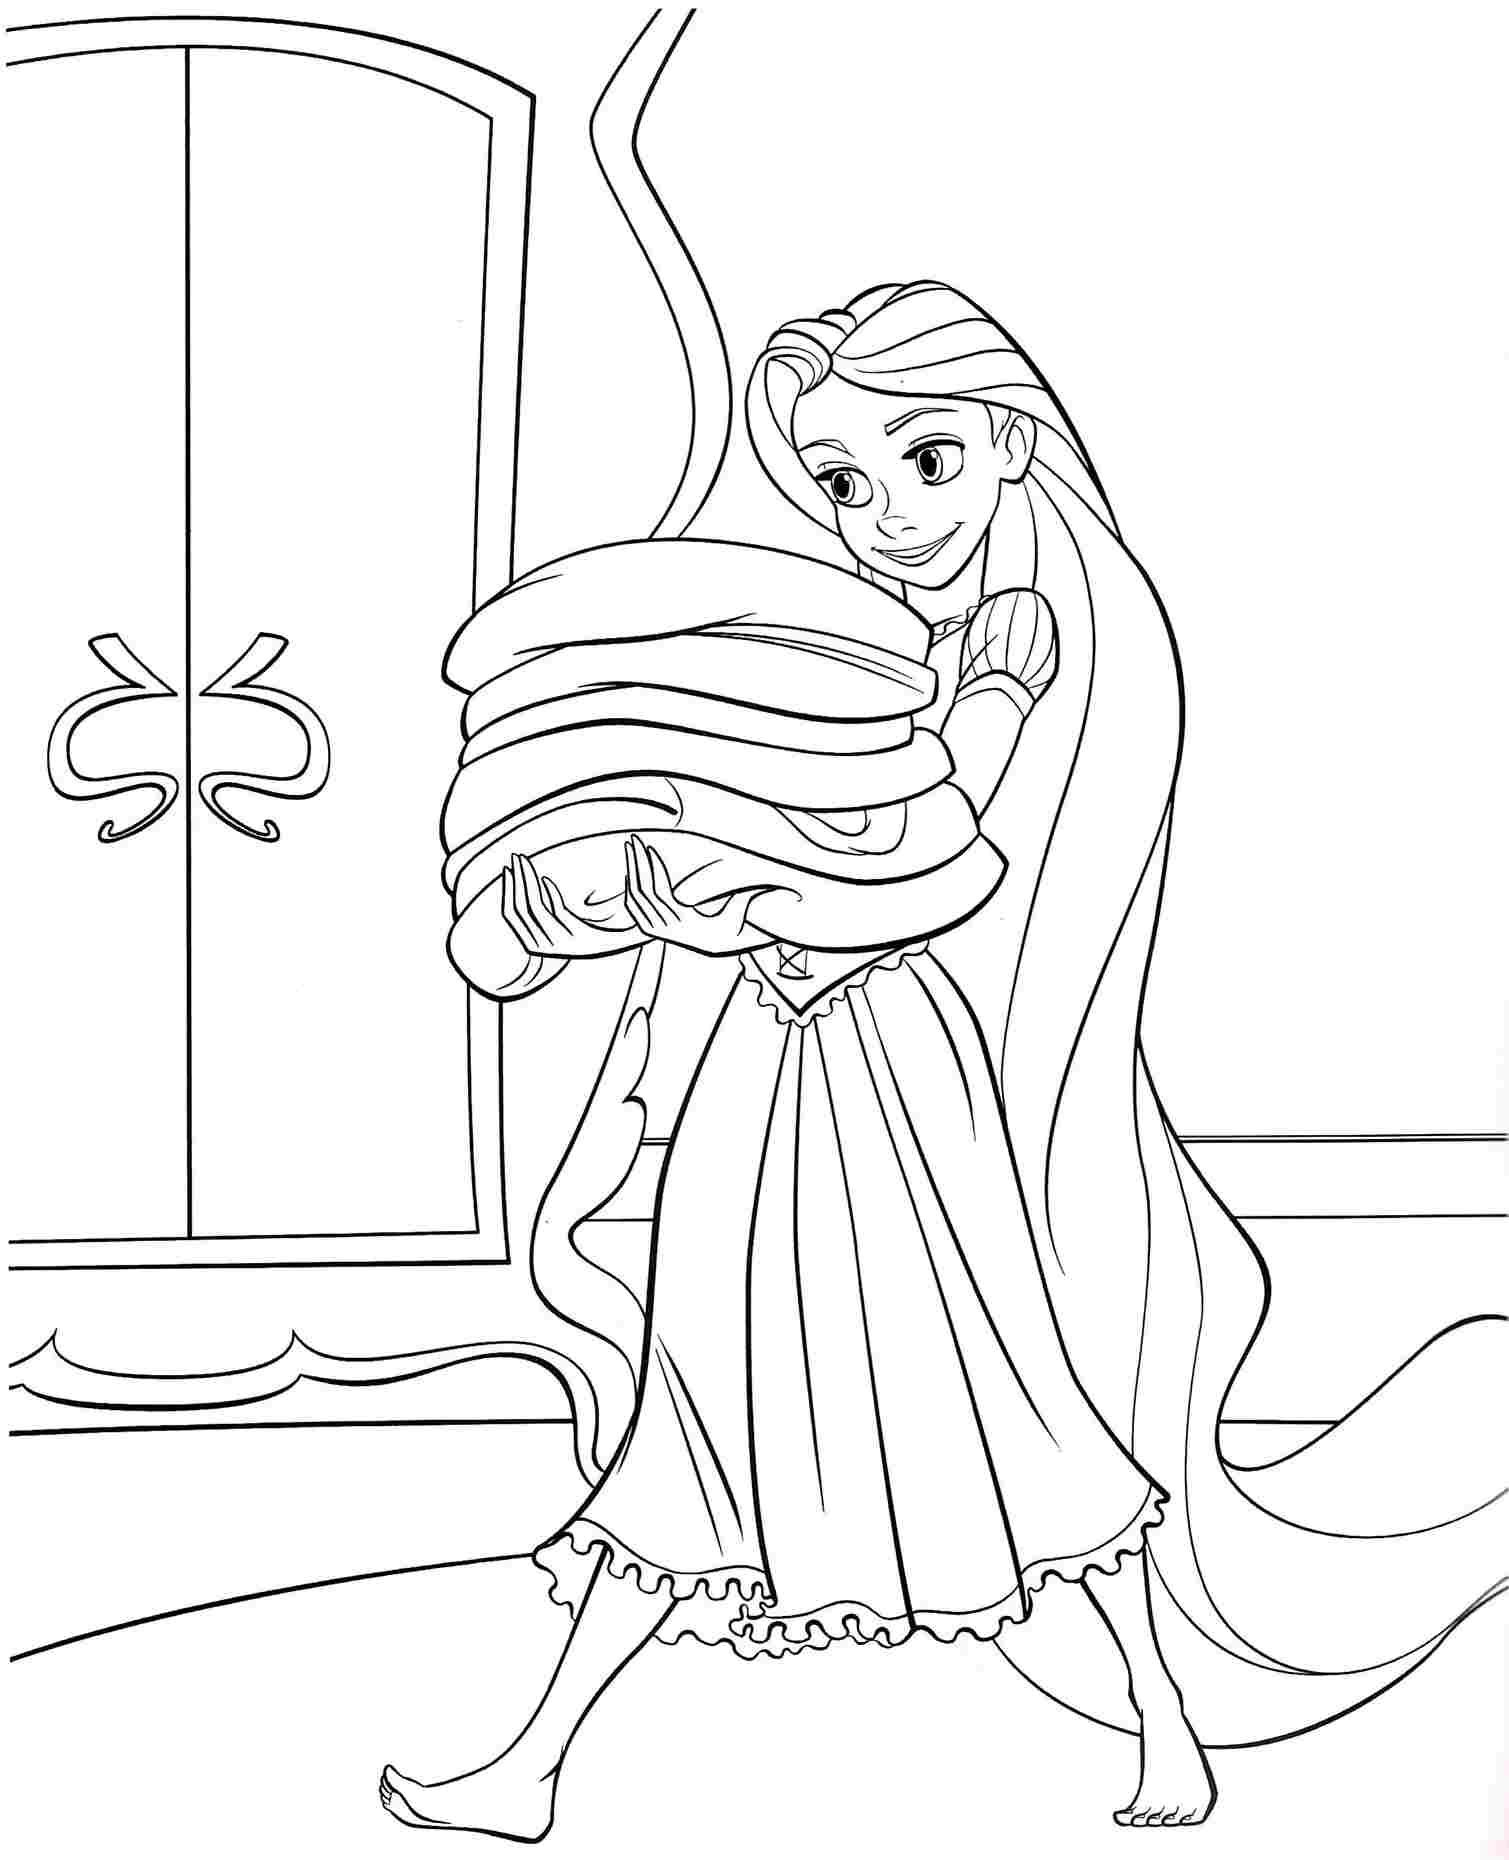 coloring pages disney princess tangled rapunzel free for kids ...